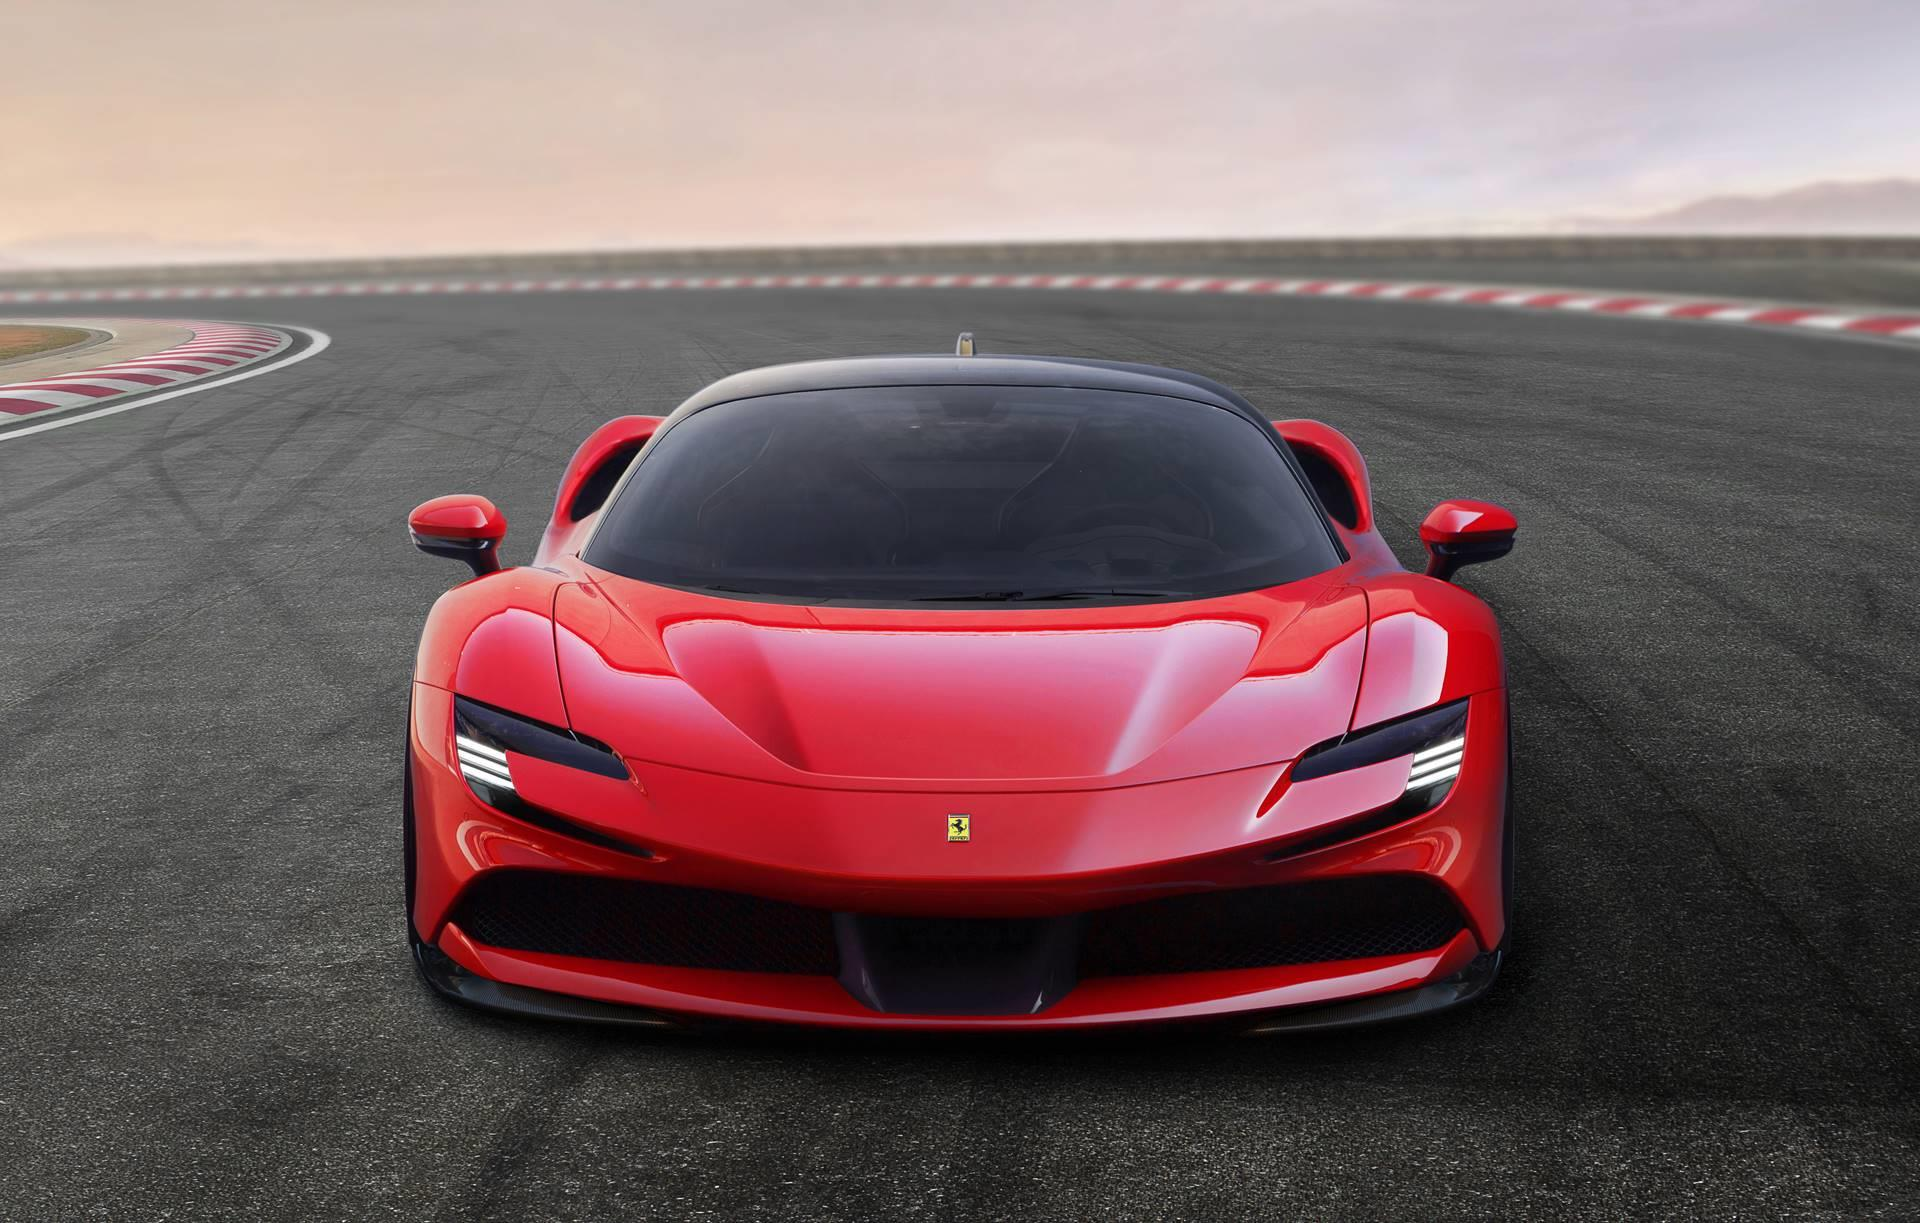 2019 Ferrari SF90 Stradale Wallpaper and Image Gallery